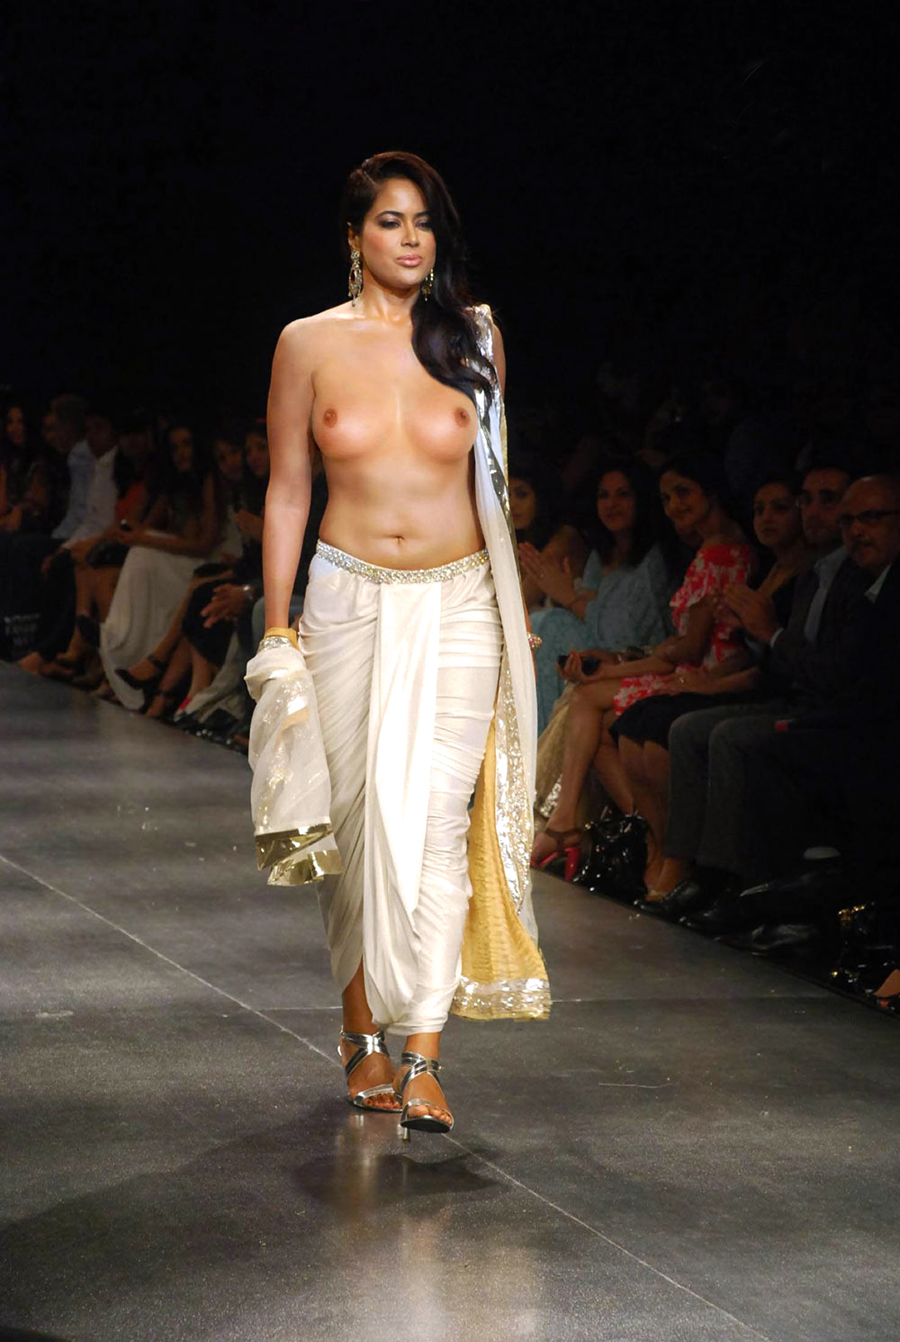 Nude runway models pussies think, that